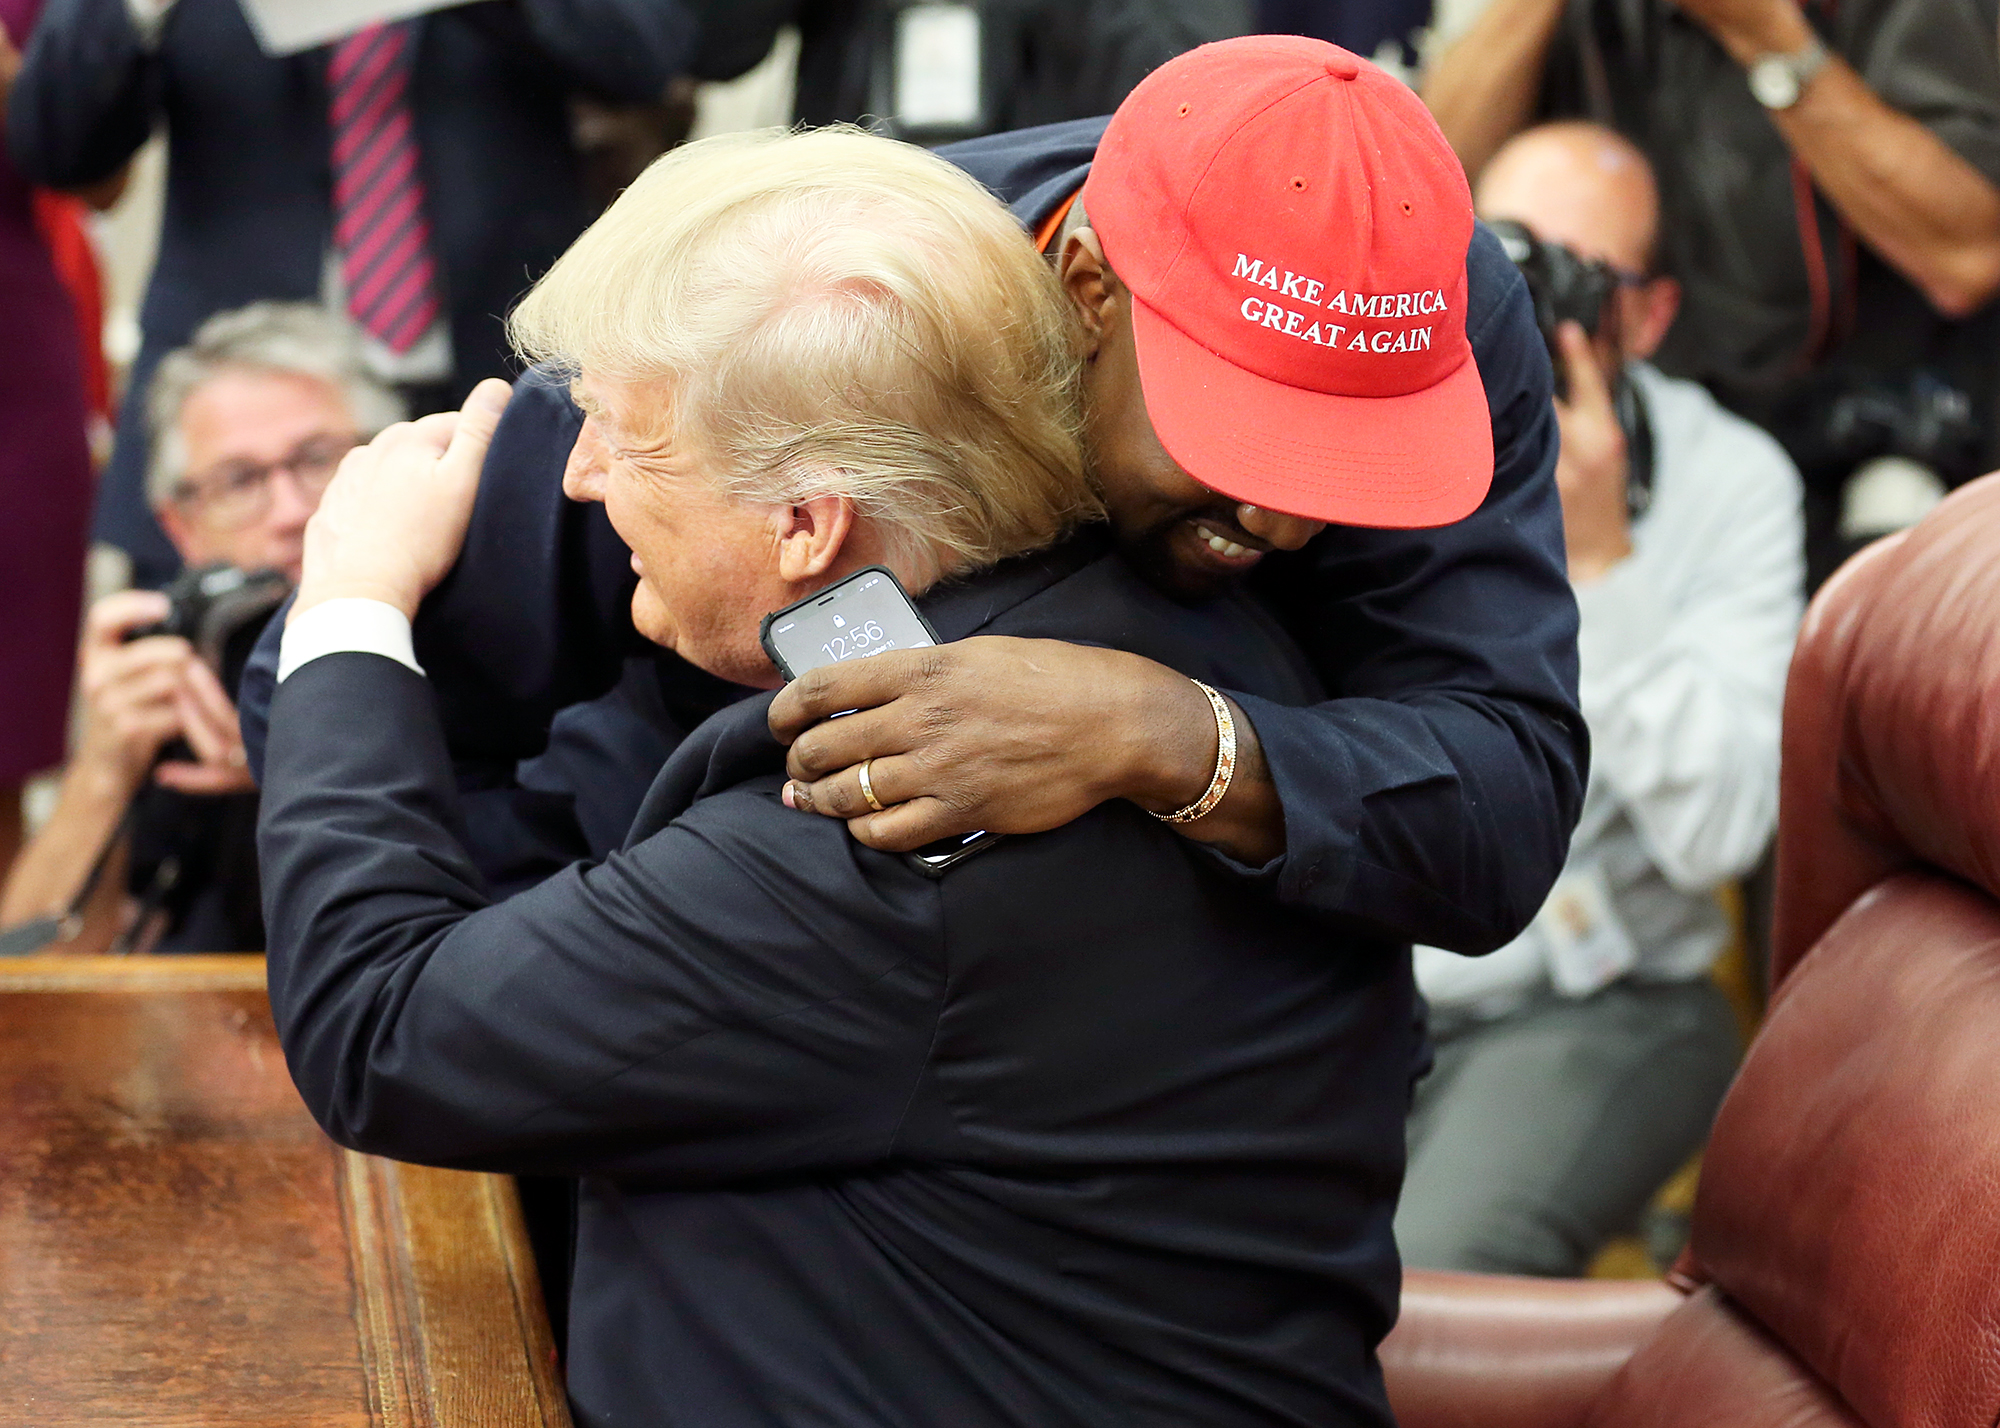 Kanye Must Be Punished – Questions Cannot Be Tolerated